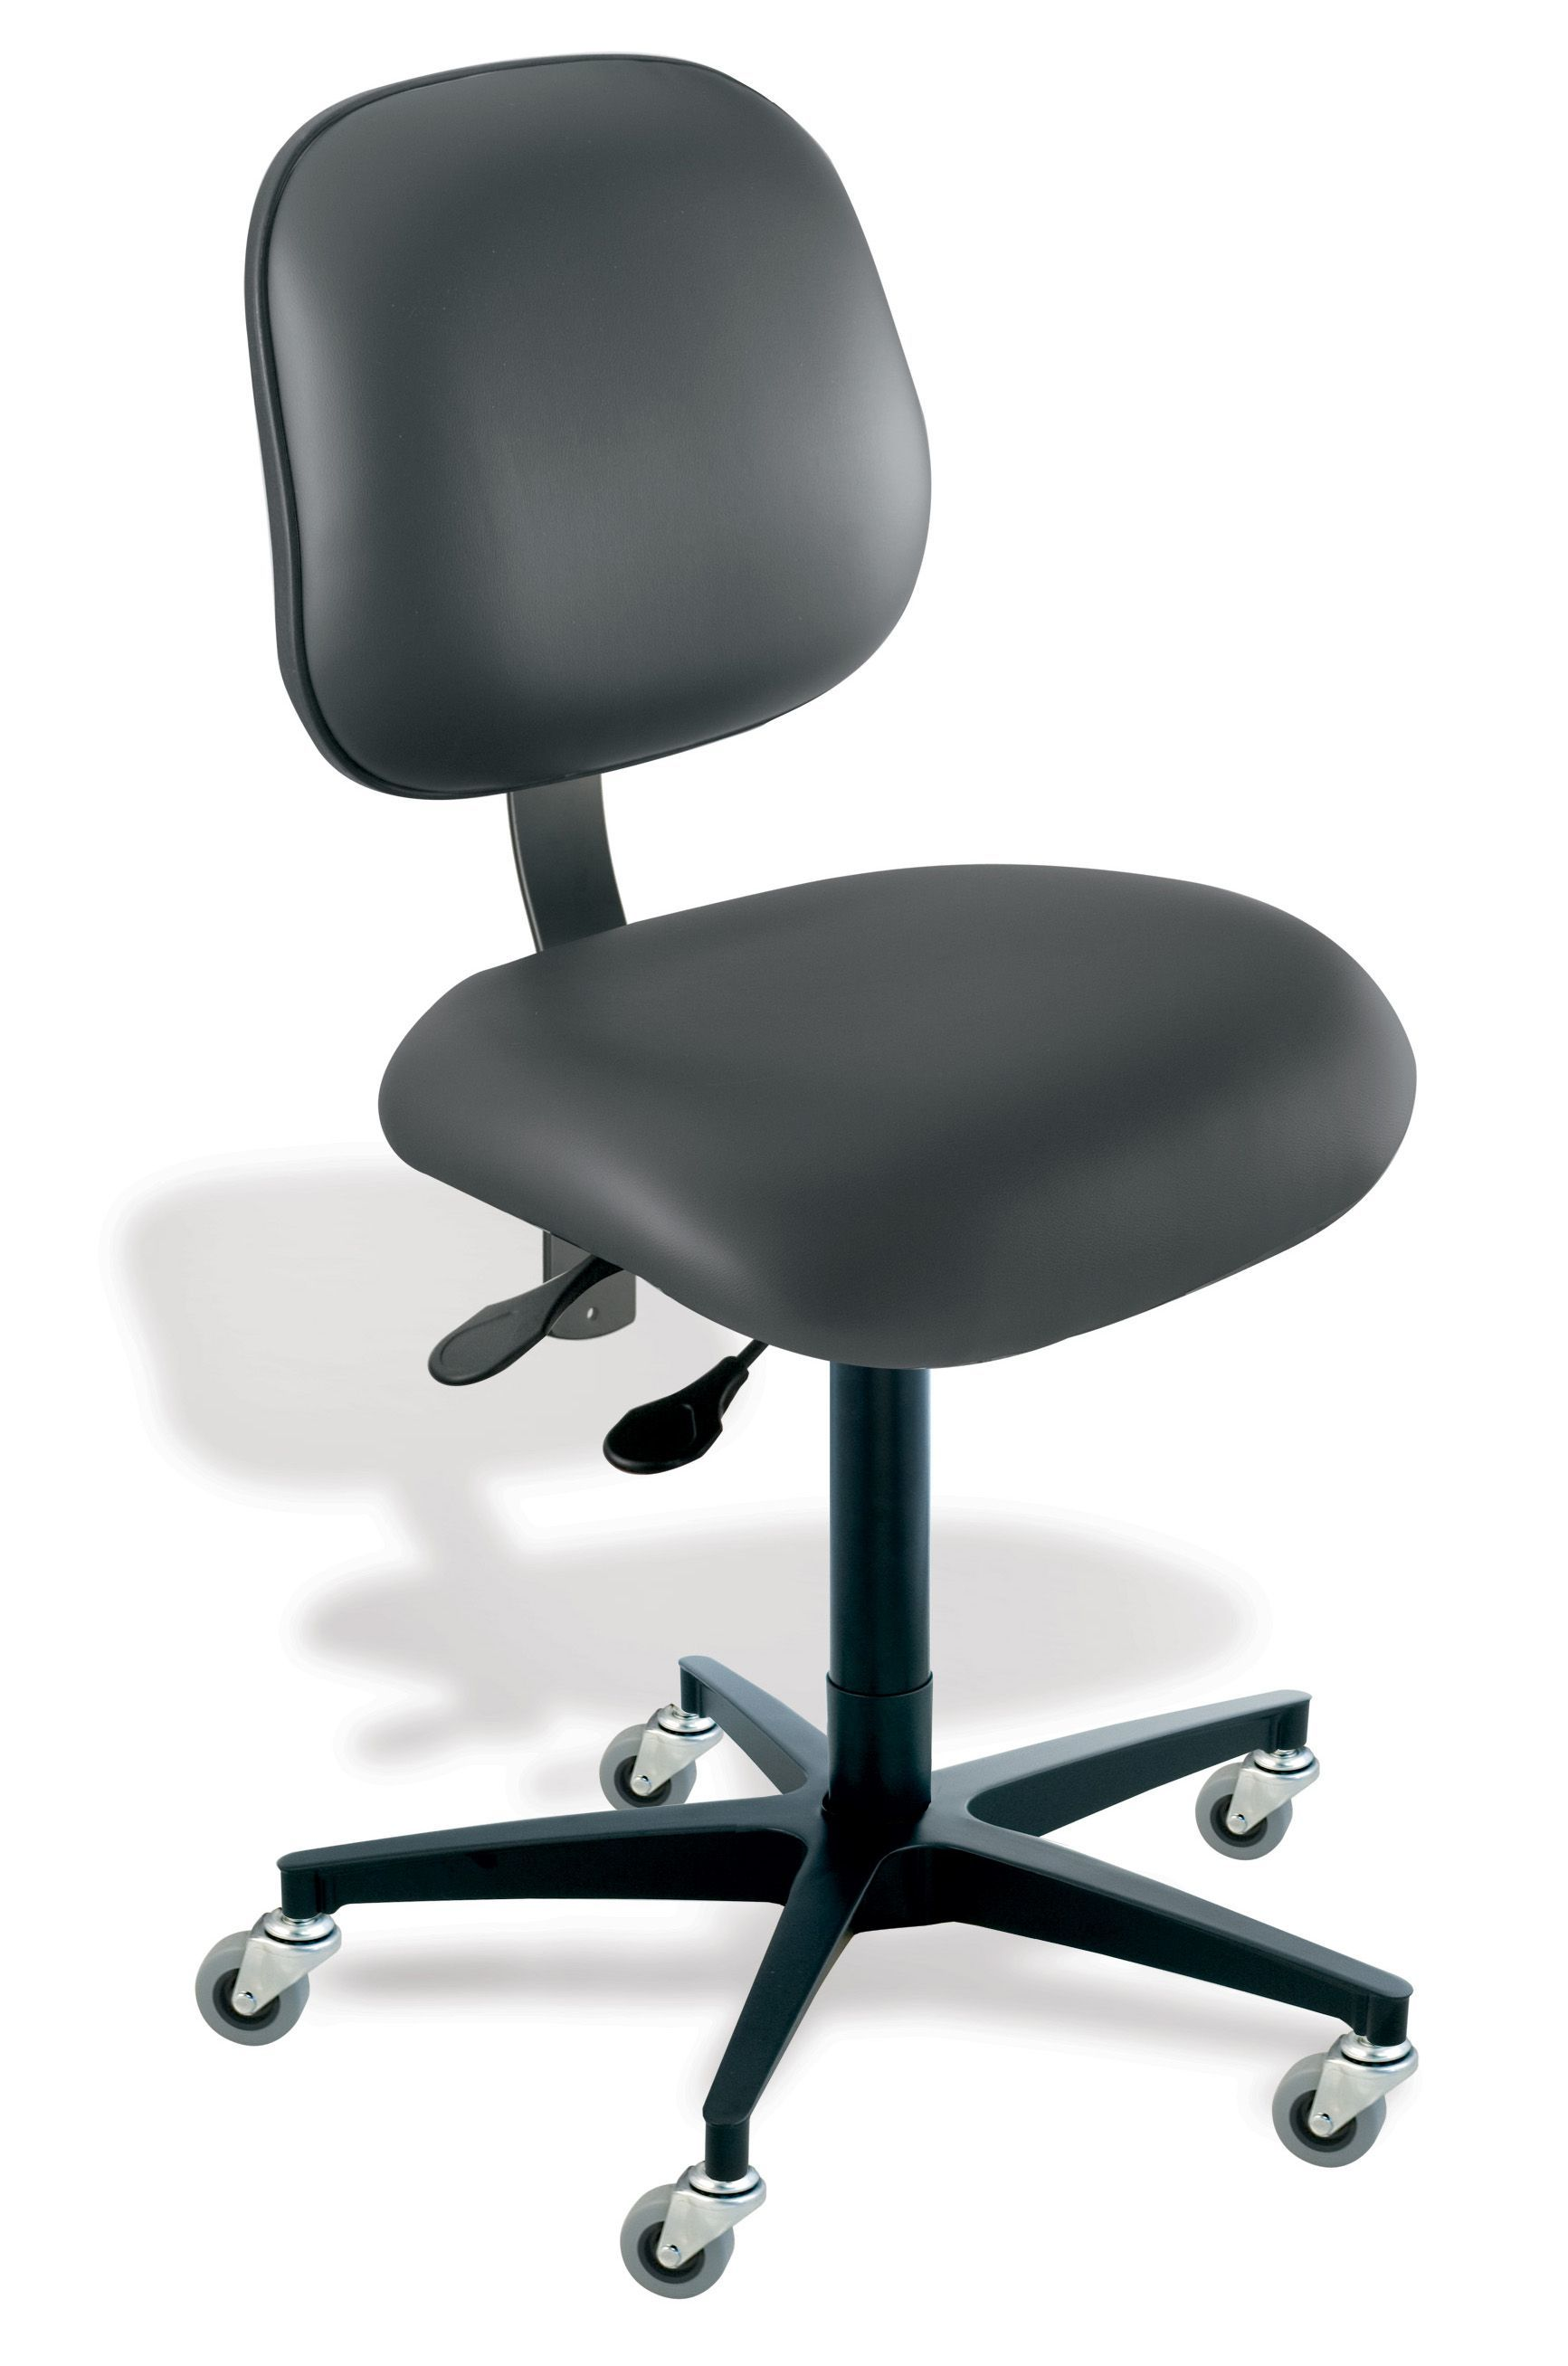 Task Chairs in DC, VA & MD, Elite EE Series Task Chair by BioFit